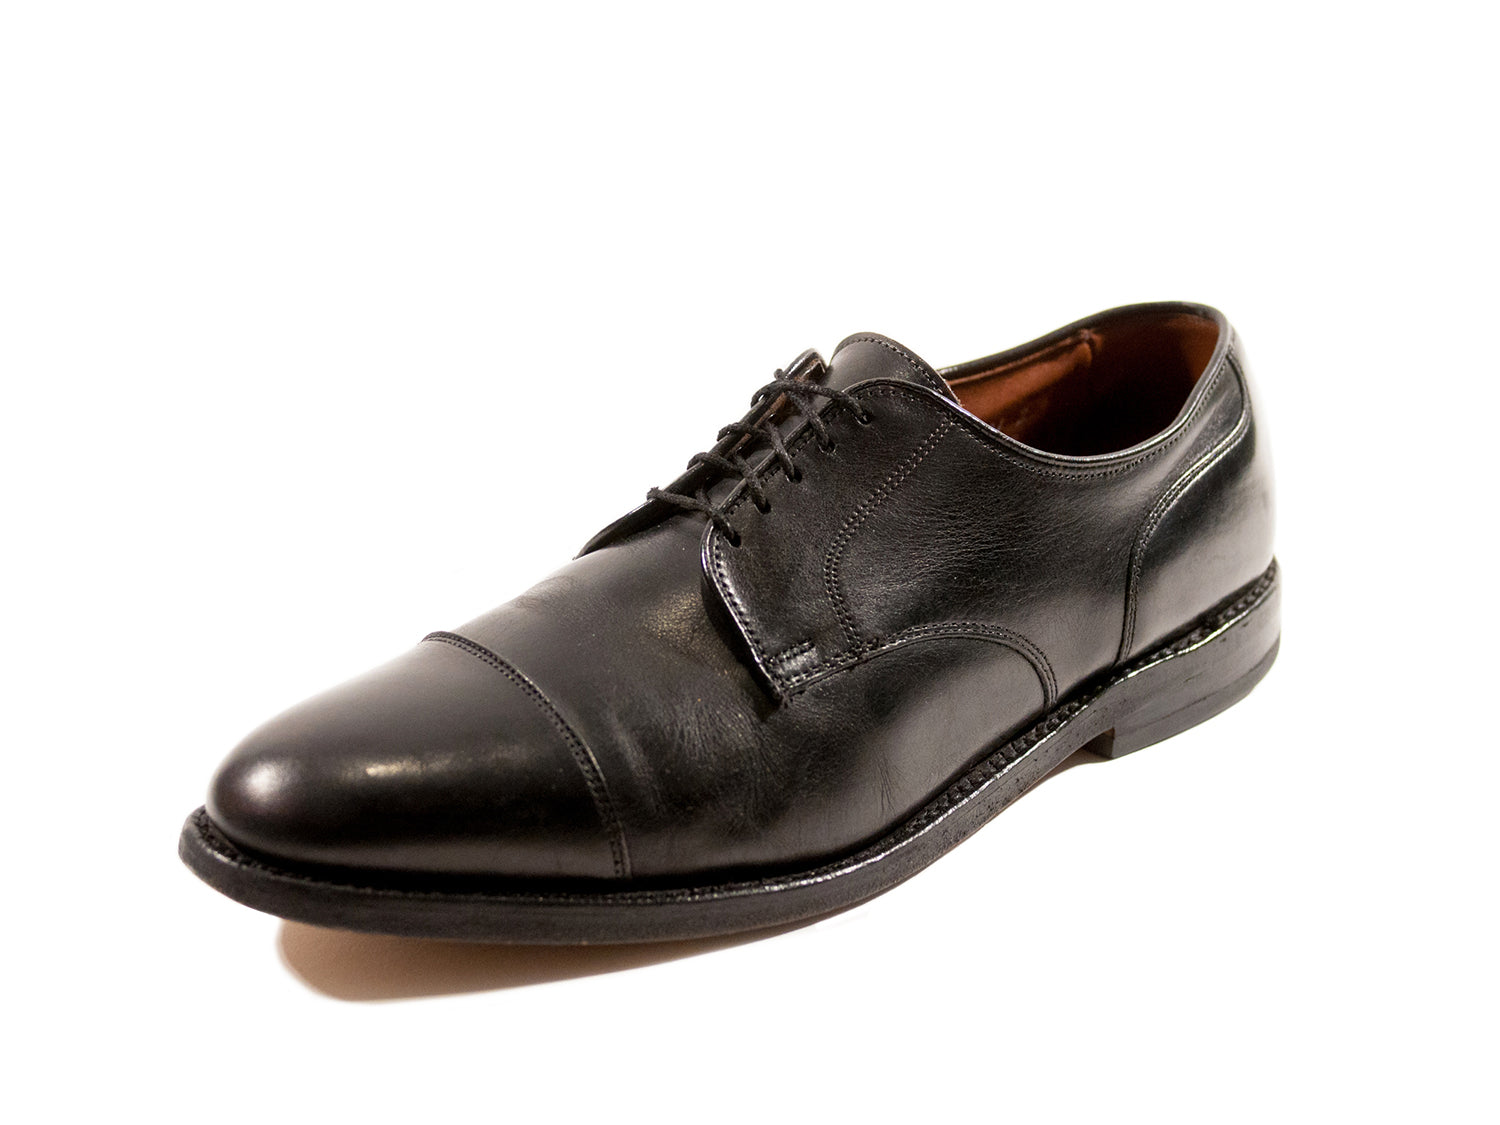 Allen Edmonds Black Margate Cap Toe Oxfords. Luxmrkt.com menswear consignment Edmonton.